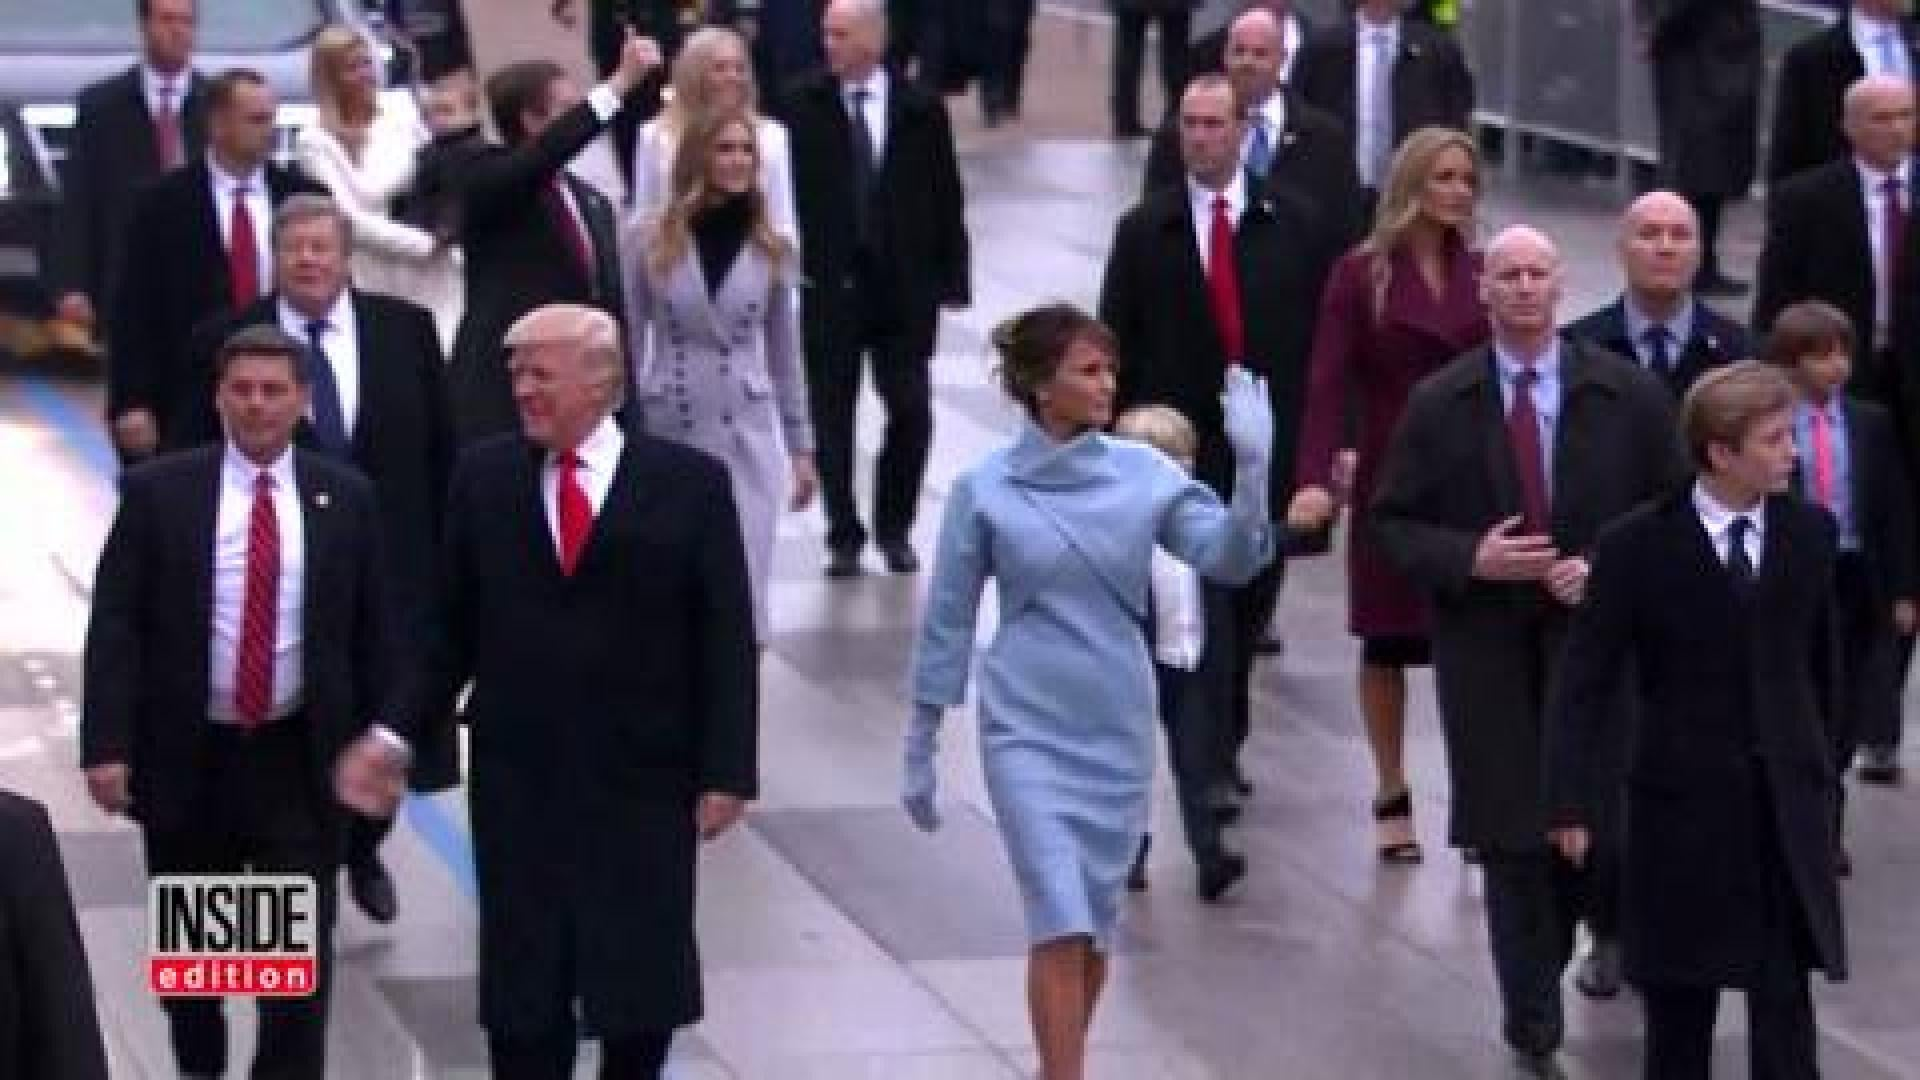 Agent Fake did secret service agent wear a fake hand to inauguration so